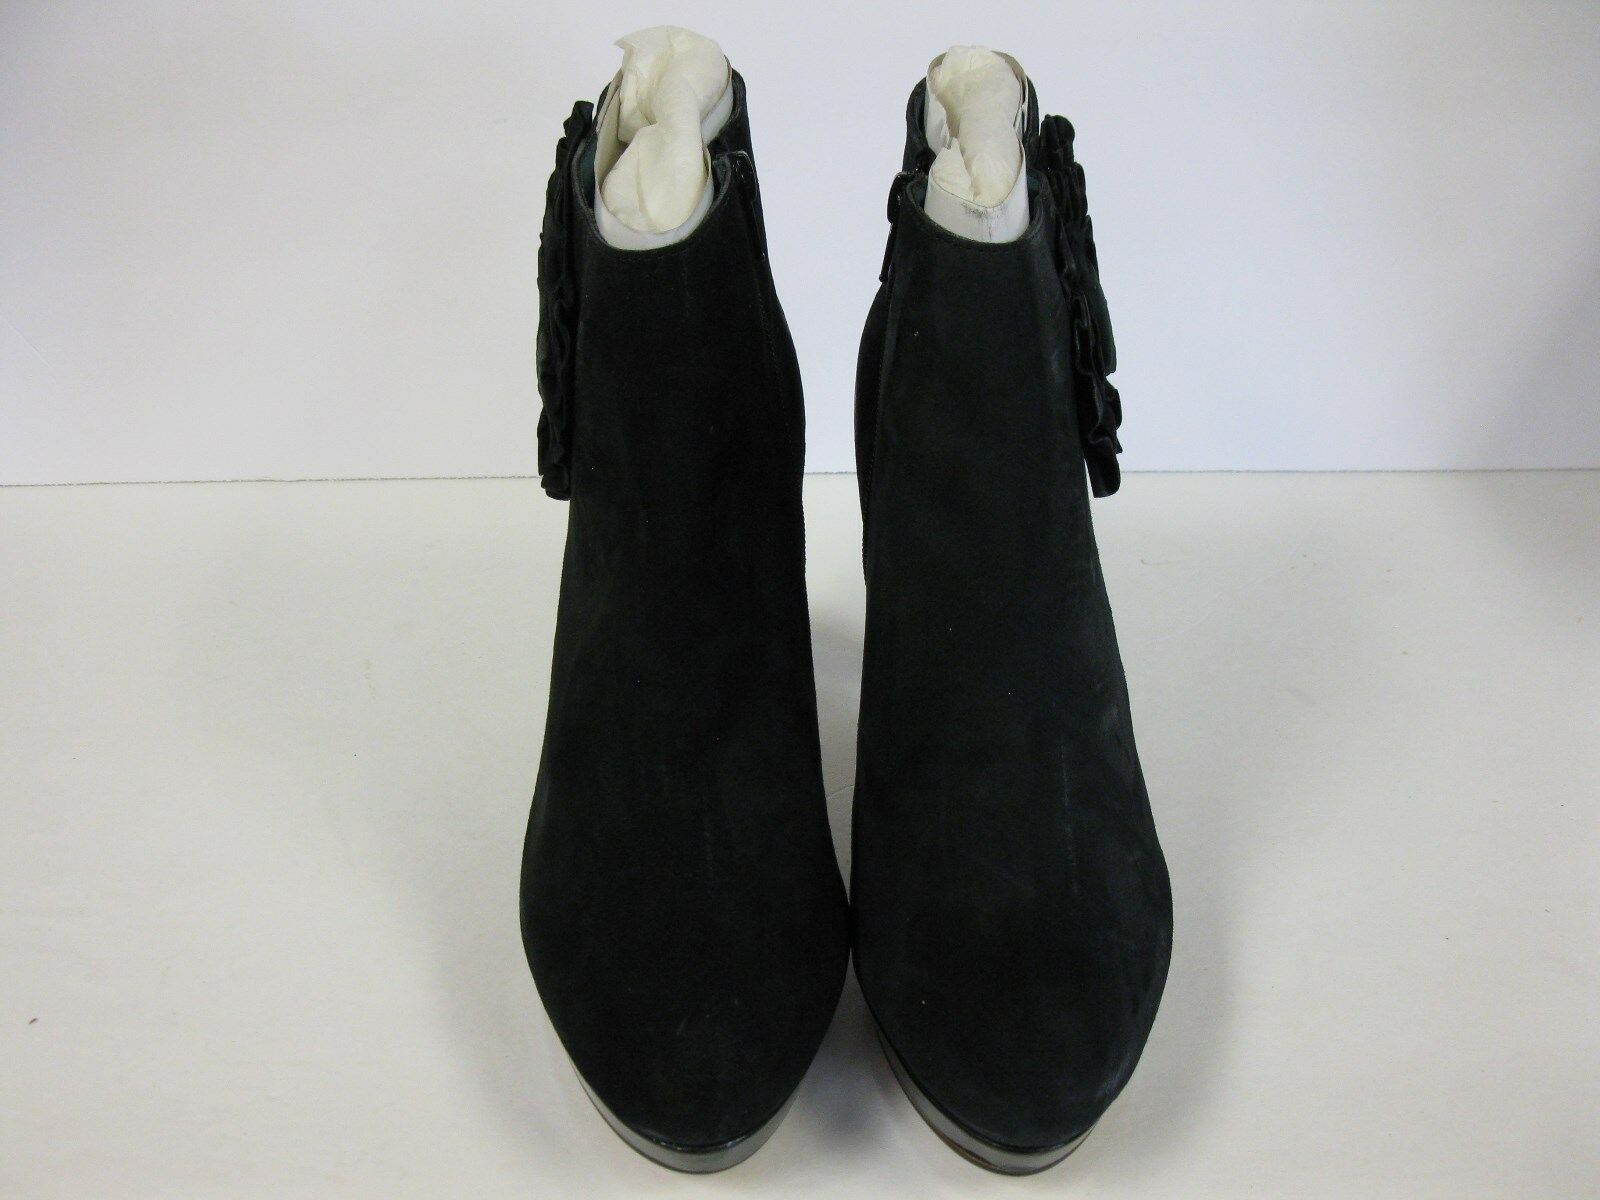 Steve Madden Ankle Boots Black Suede Size 10